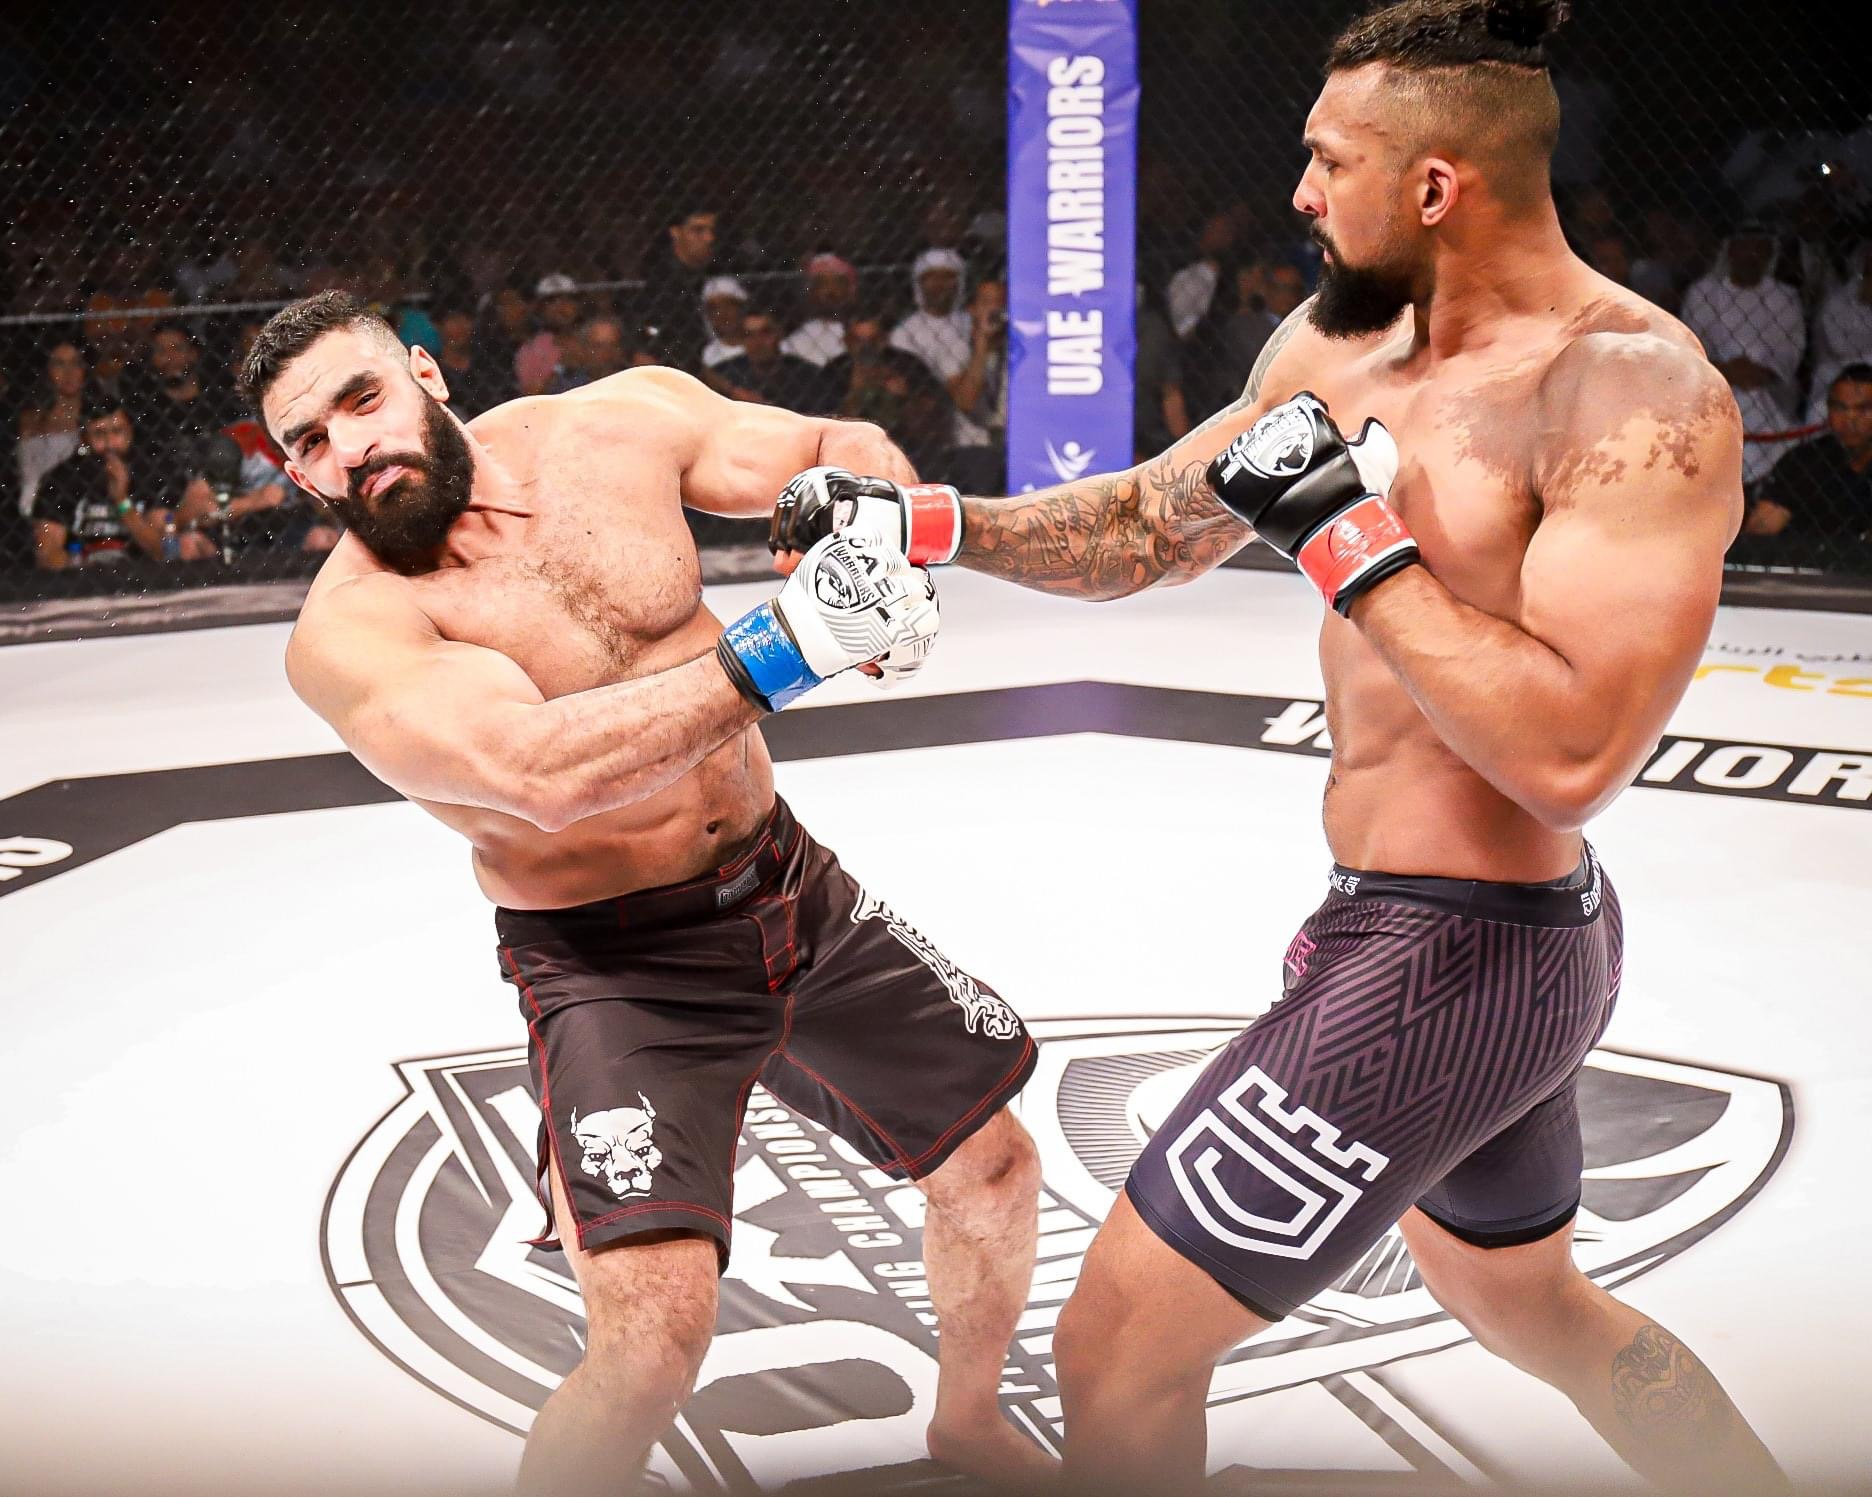 UAE Warriors returns as 'number one launch pad' for MMA fighters